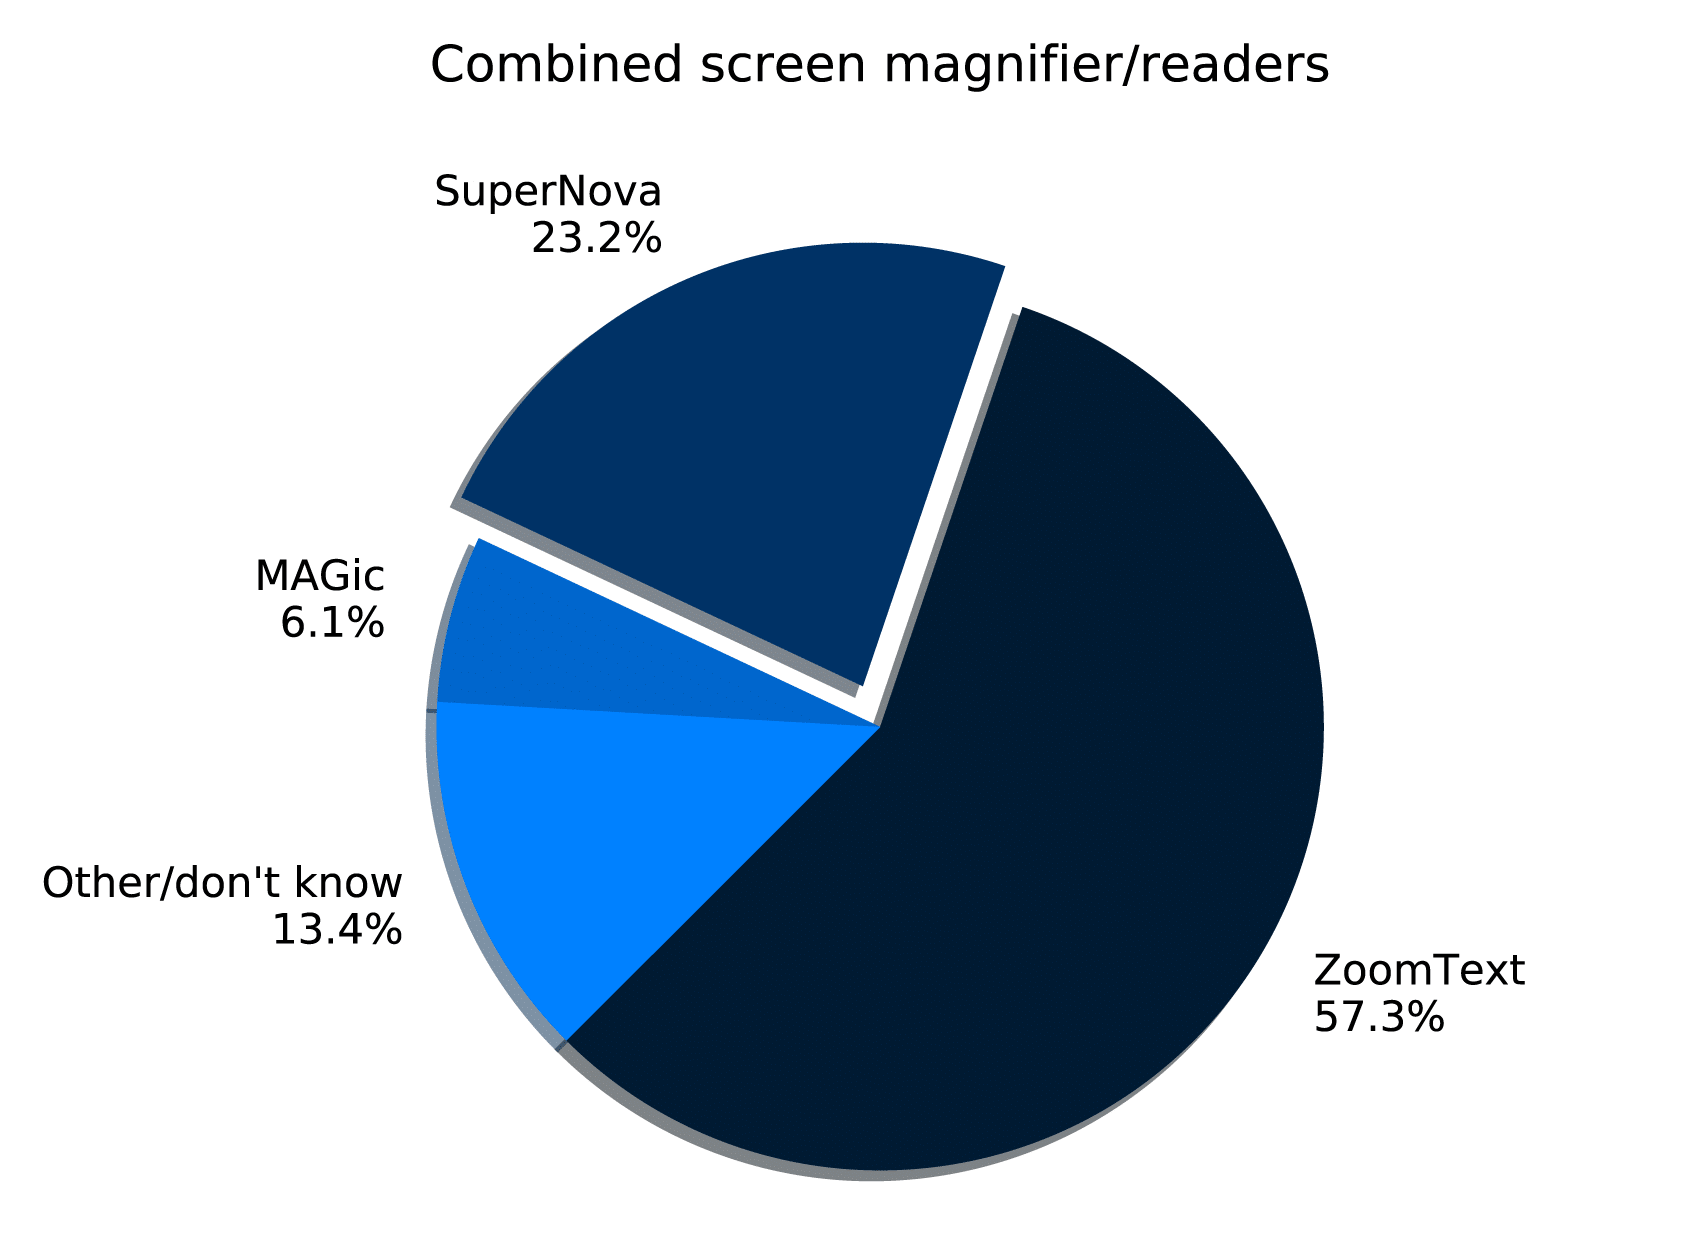 Pie chart showing percentages of users of different types of combined screen magnifier/reader